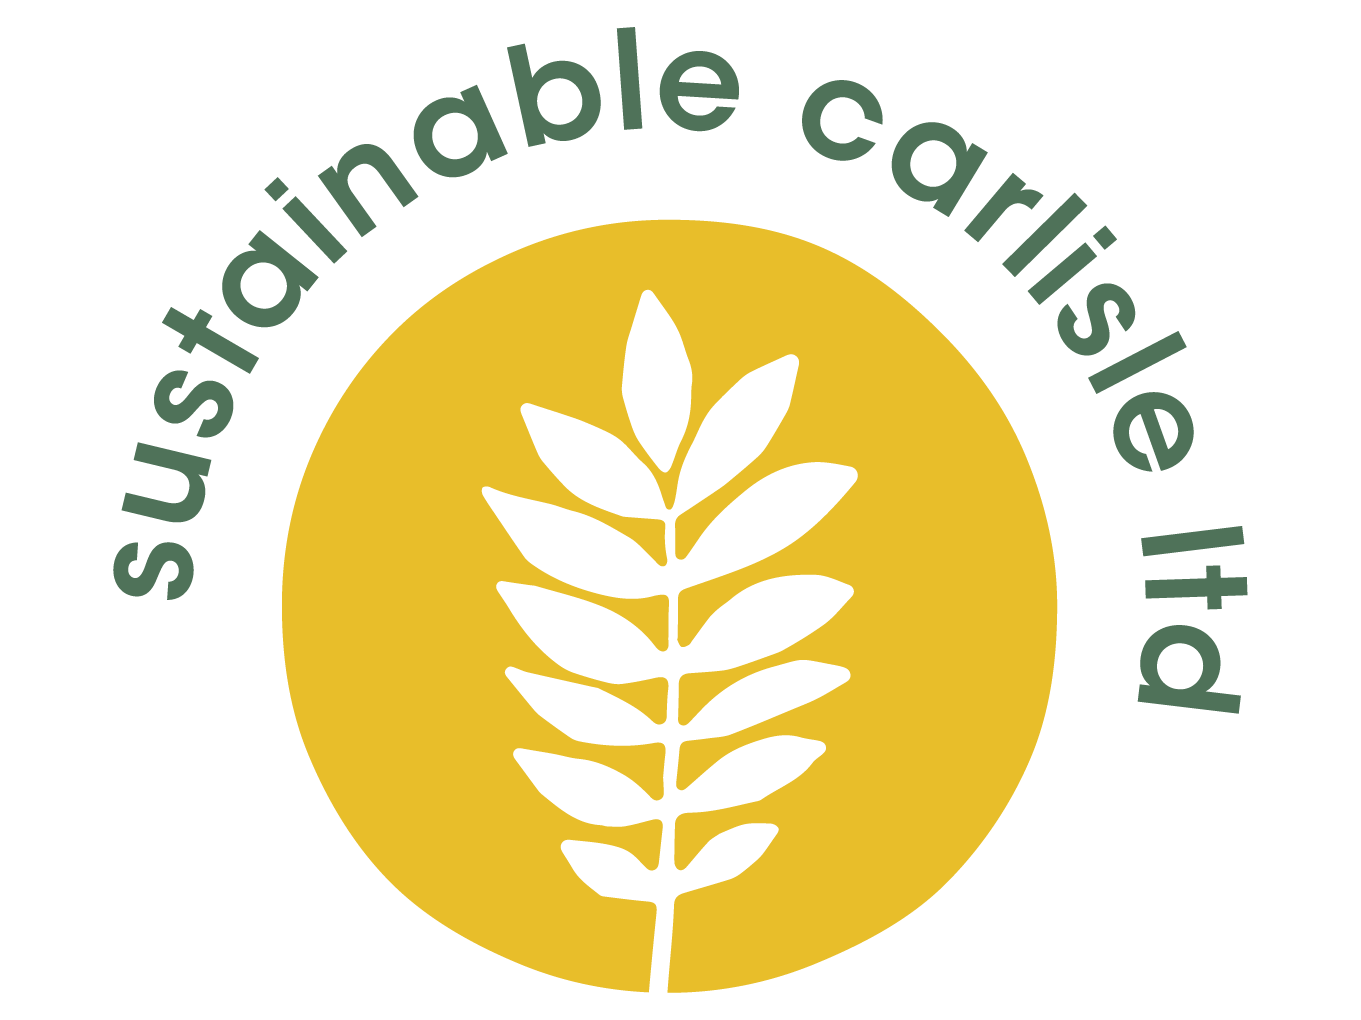 Sustainable Carlisle